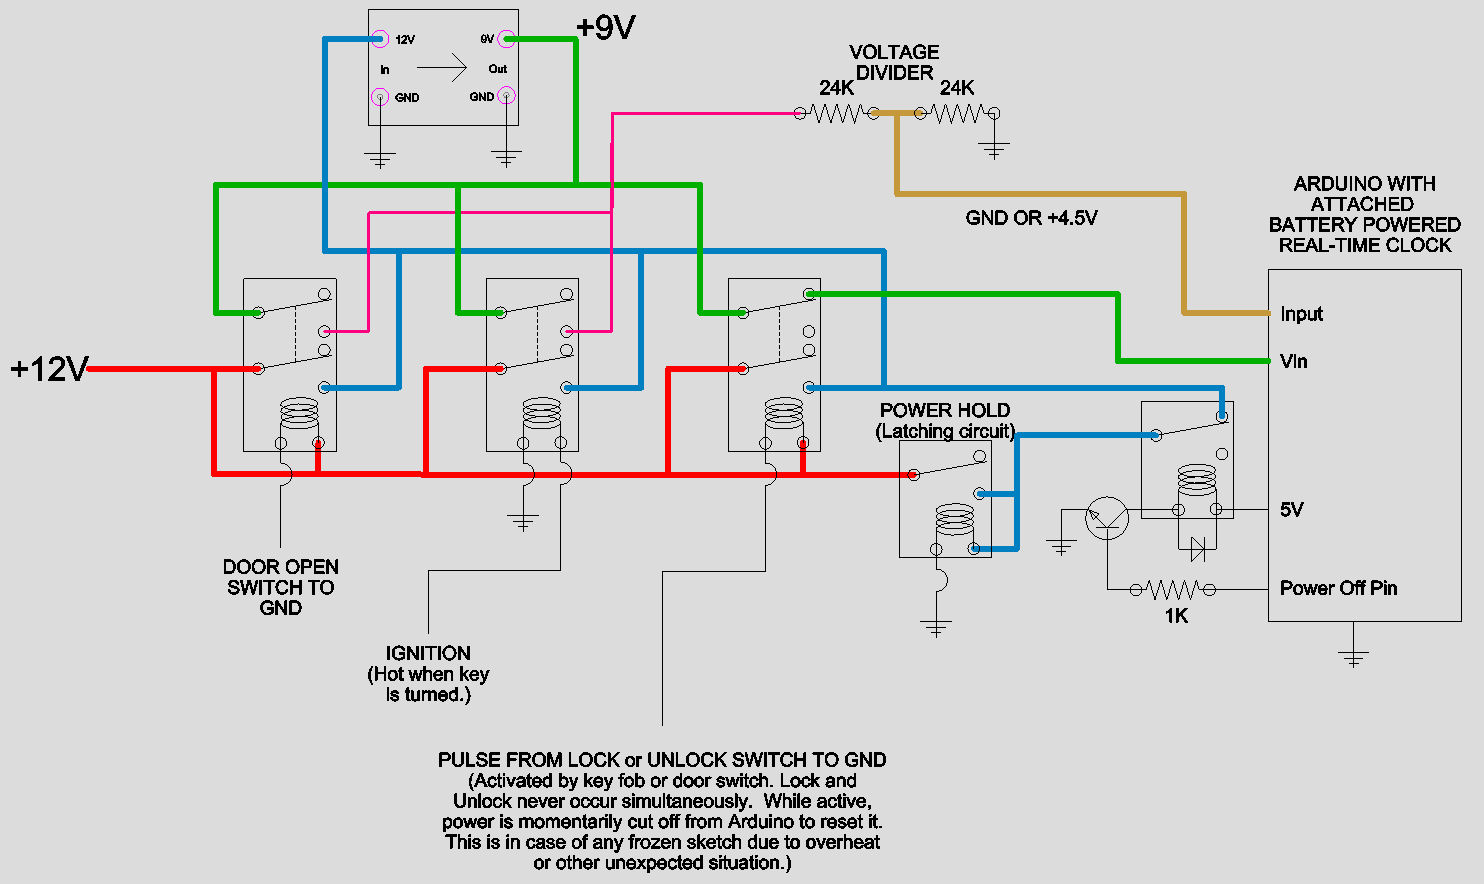 ... Wiring Diagram Latching Relay. I know the car voltage is noisy and  unstable, but to my knowledge a relay